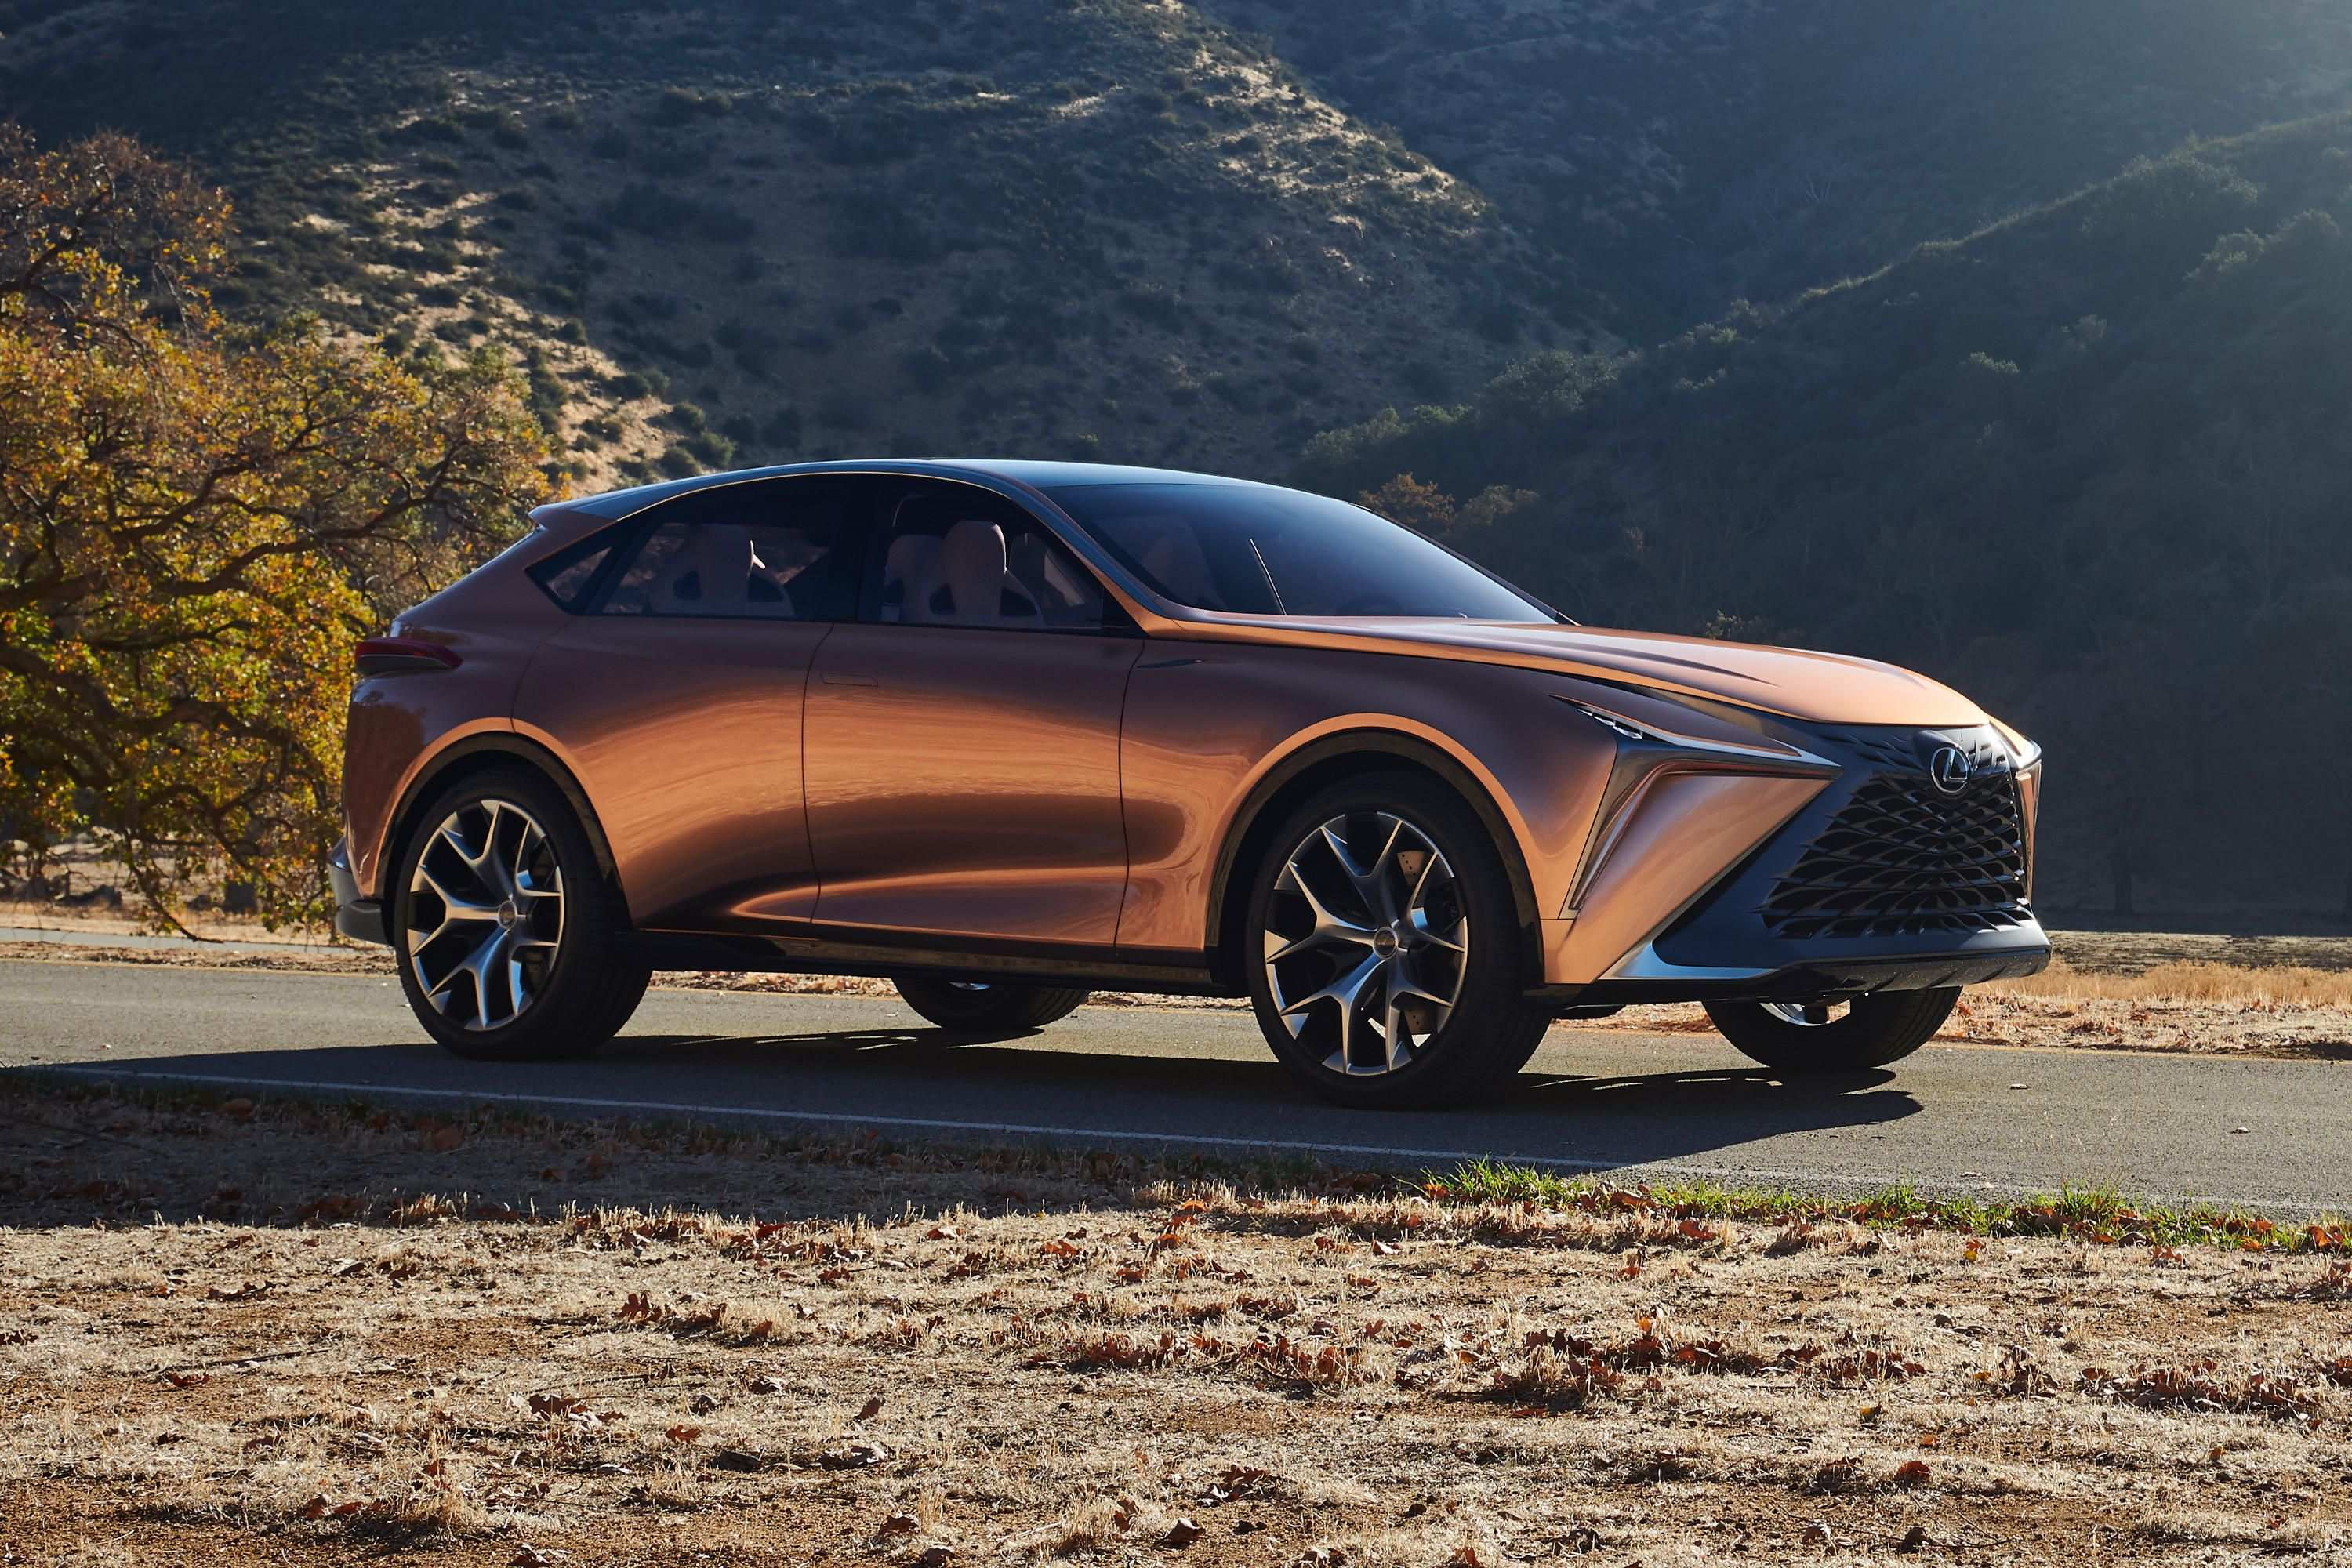 28 Gallery of Lexus Lf 1 Limitless 2020 Price by Lexus Lf 1 Limitless 2020